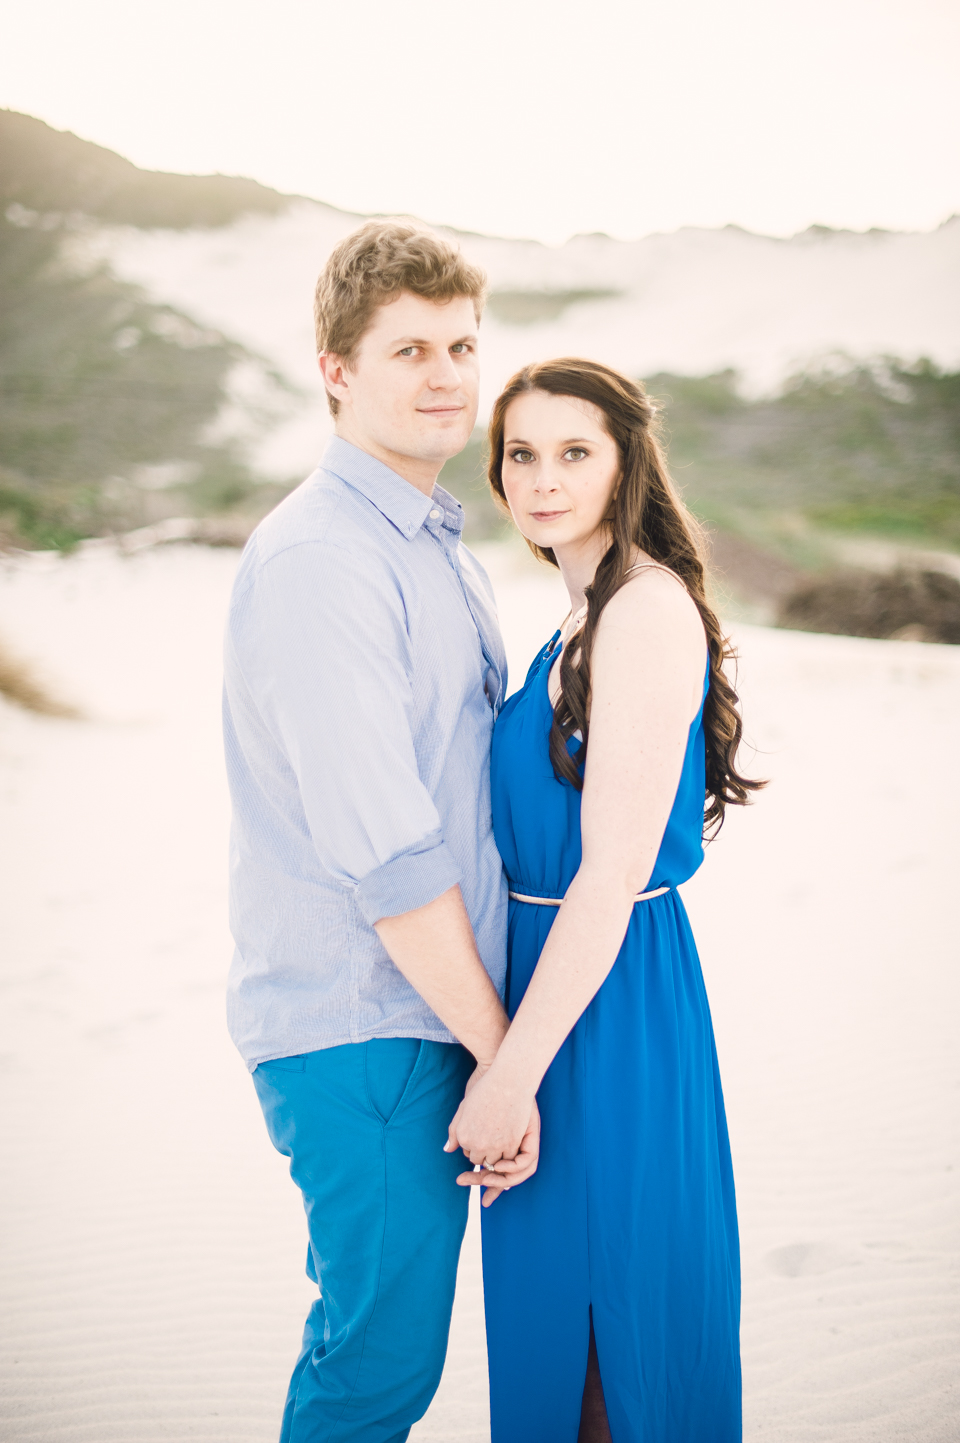 RYAN PARKER PHOTOGRAPHY_FINE ART_COUPLE SESSION_CAPE TOWN_L&C_DSC_1027.jpg